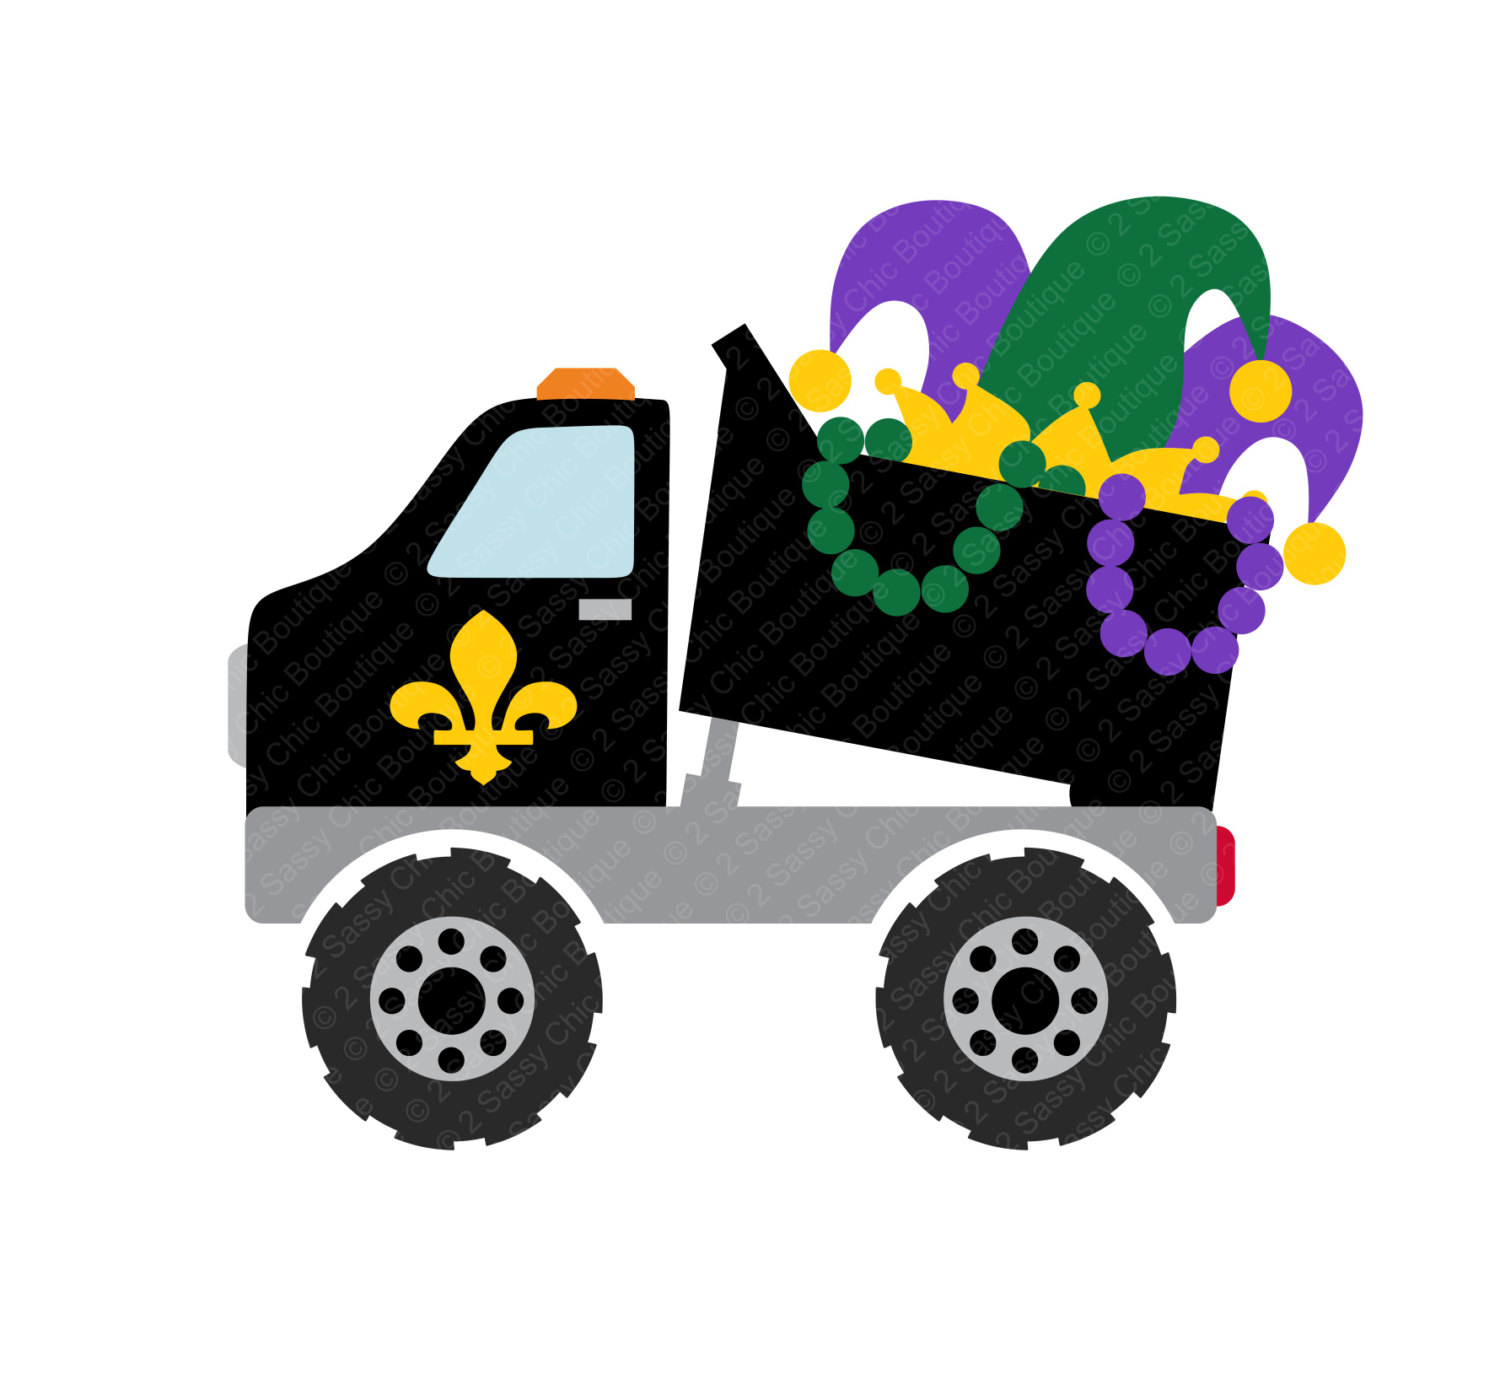 1500x1395 Mardi Gras Dump Truck With Coins Svg Eps Ai Dfx Formats For Heat